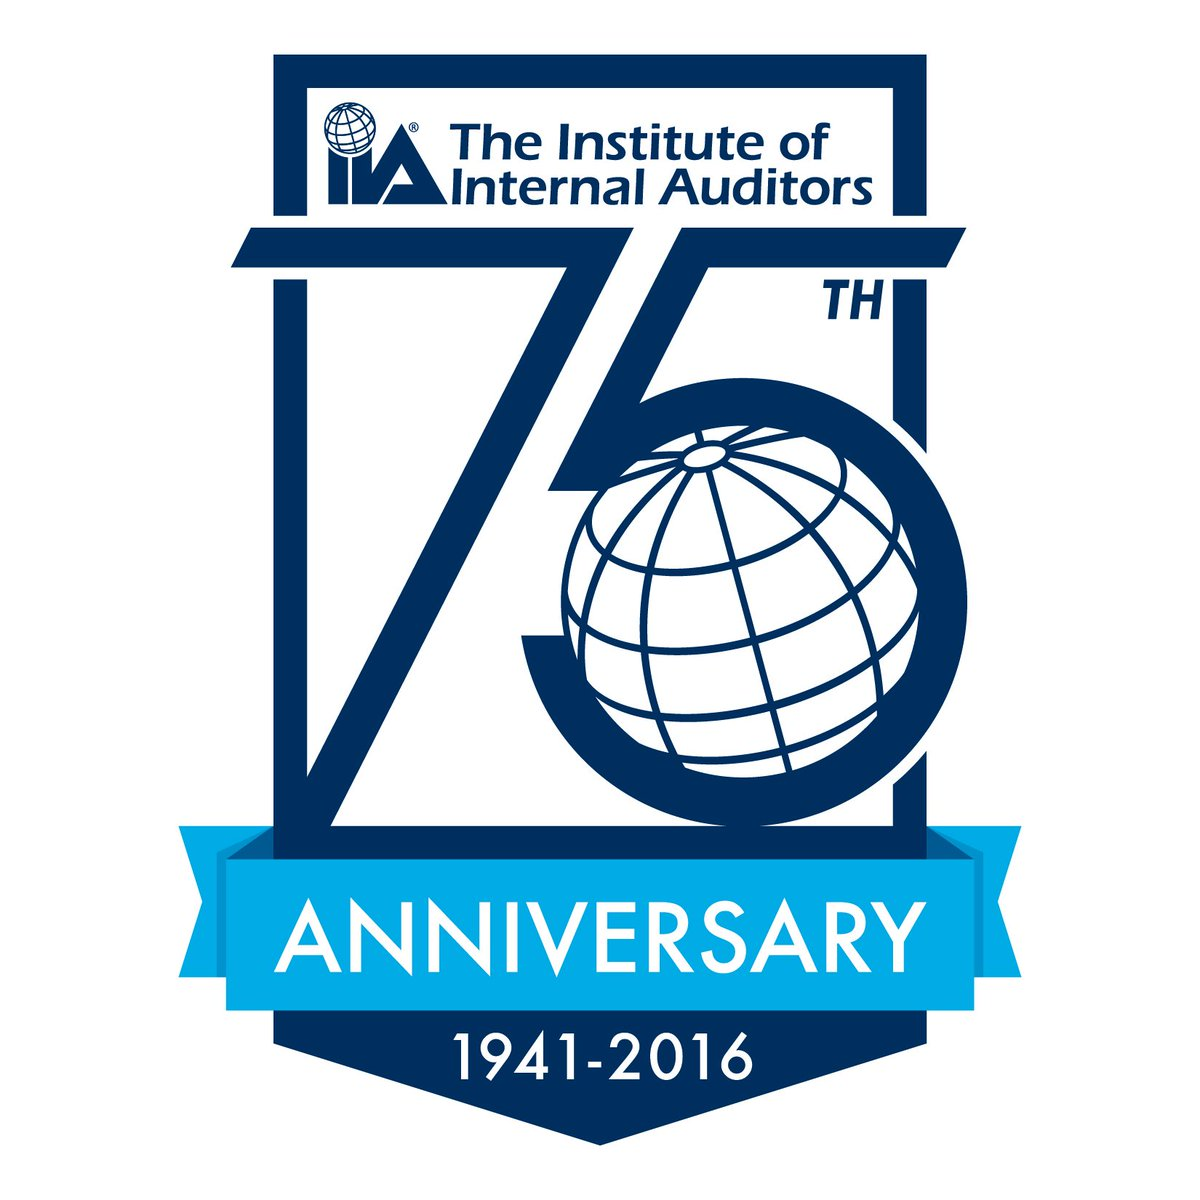 The IIA is 75 years old! We are 180,000 #InternalAuditors worldwide. Follow #IIA75 to learn more about us! https://t.co/o6rg4O03QY